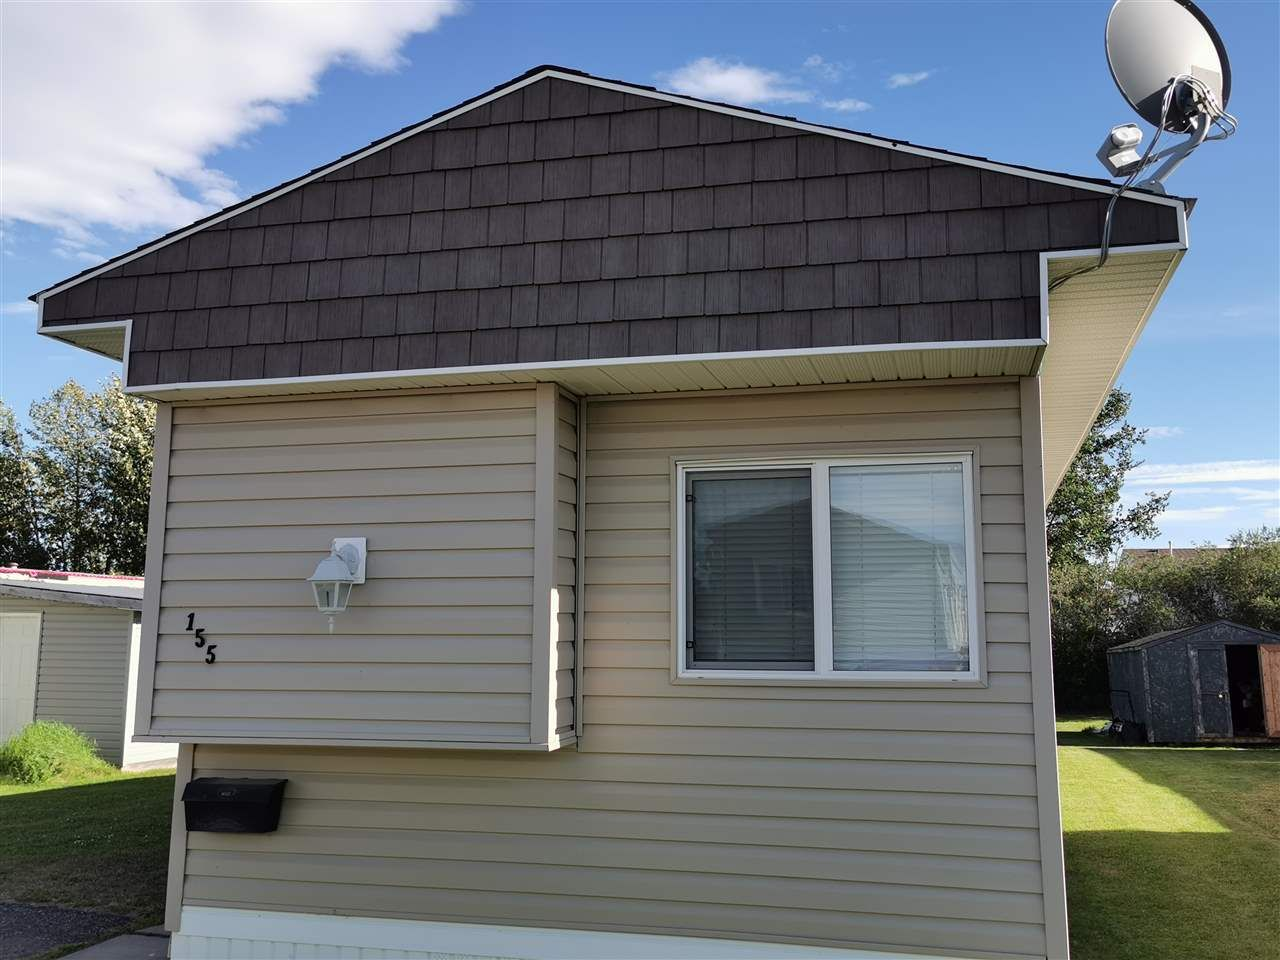 "Main Photo: 155 9207 82 Street in Fort St. John: Fort St. John - City SE Manufactured Home for sale in ""SOUTHRIDGE"" (Fort St. John (Zone 60))  : MLS®# R2515193"